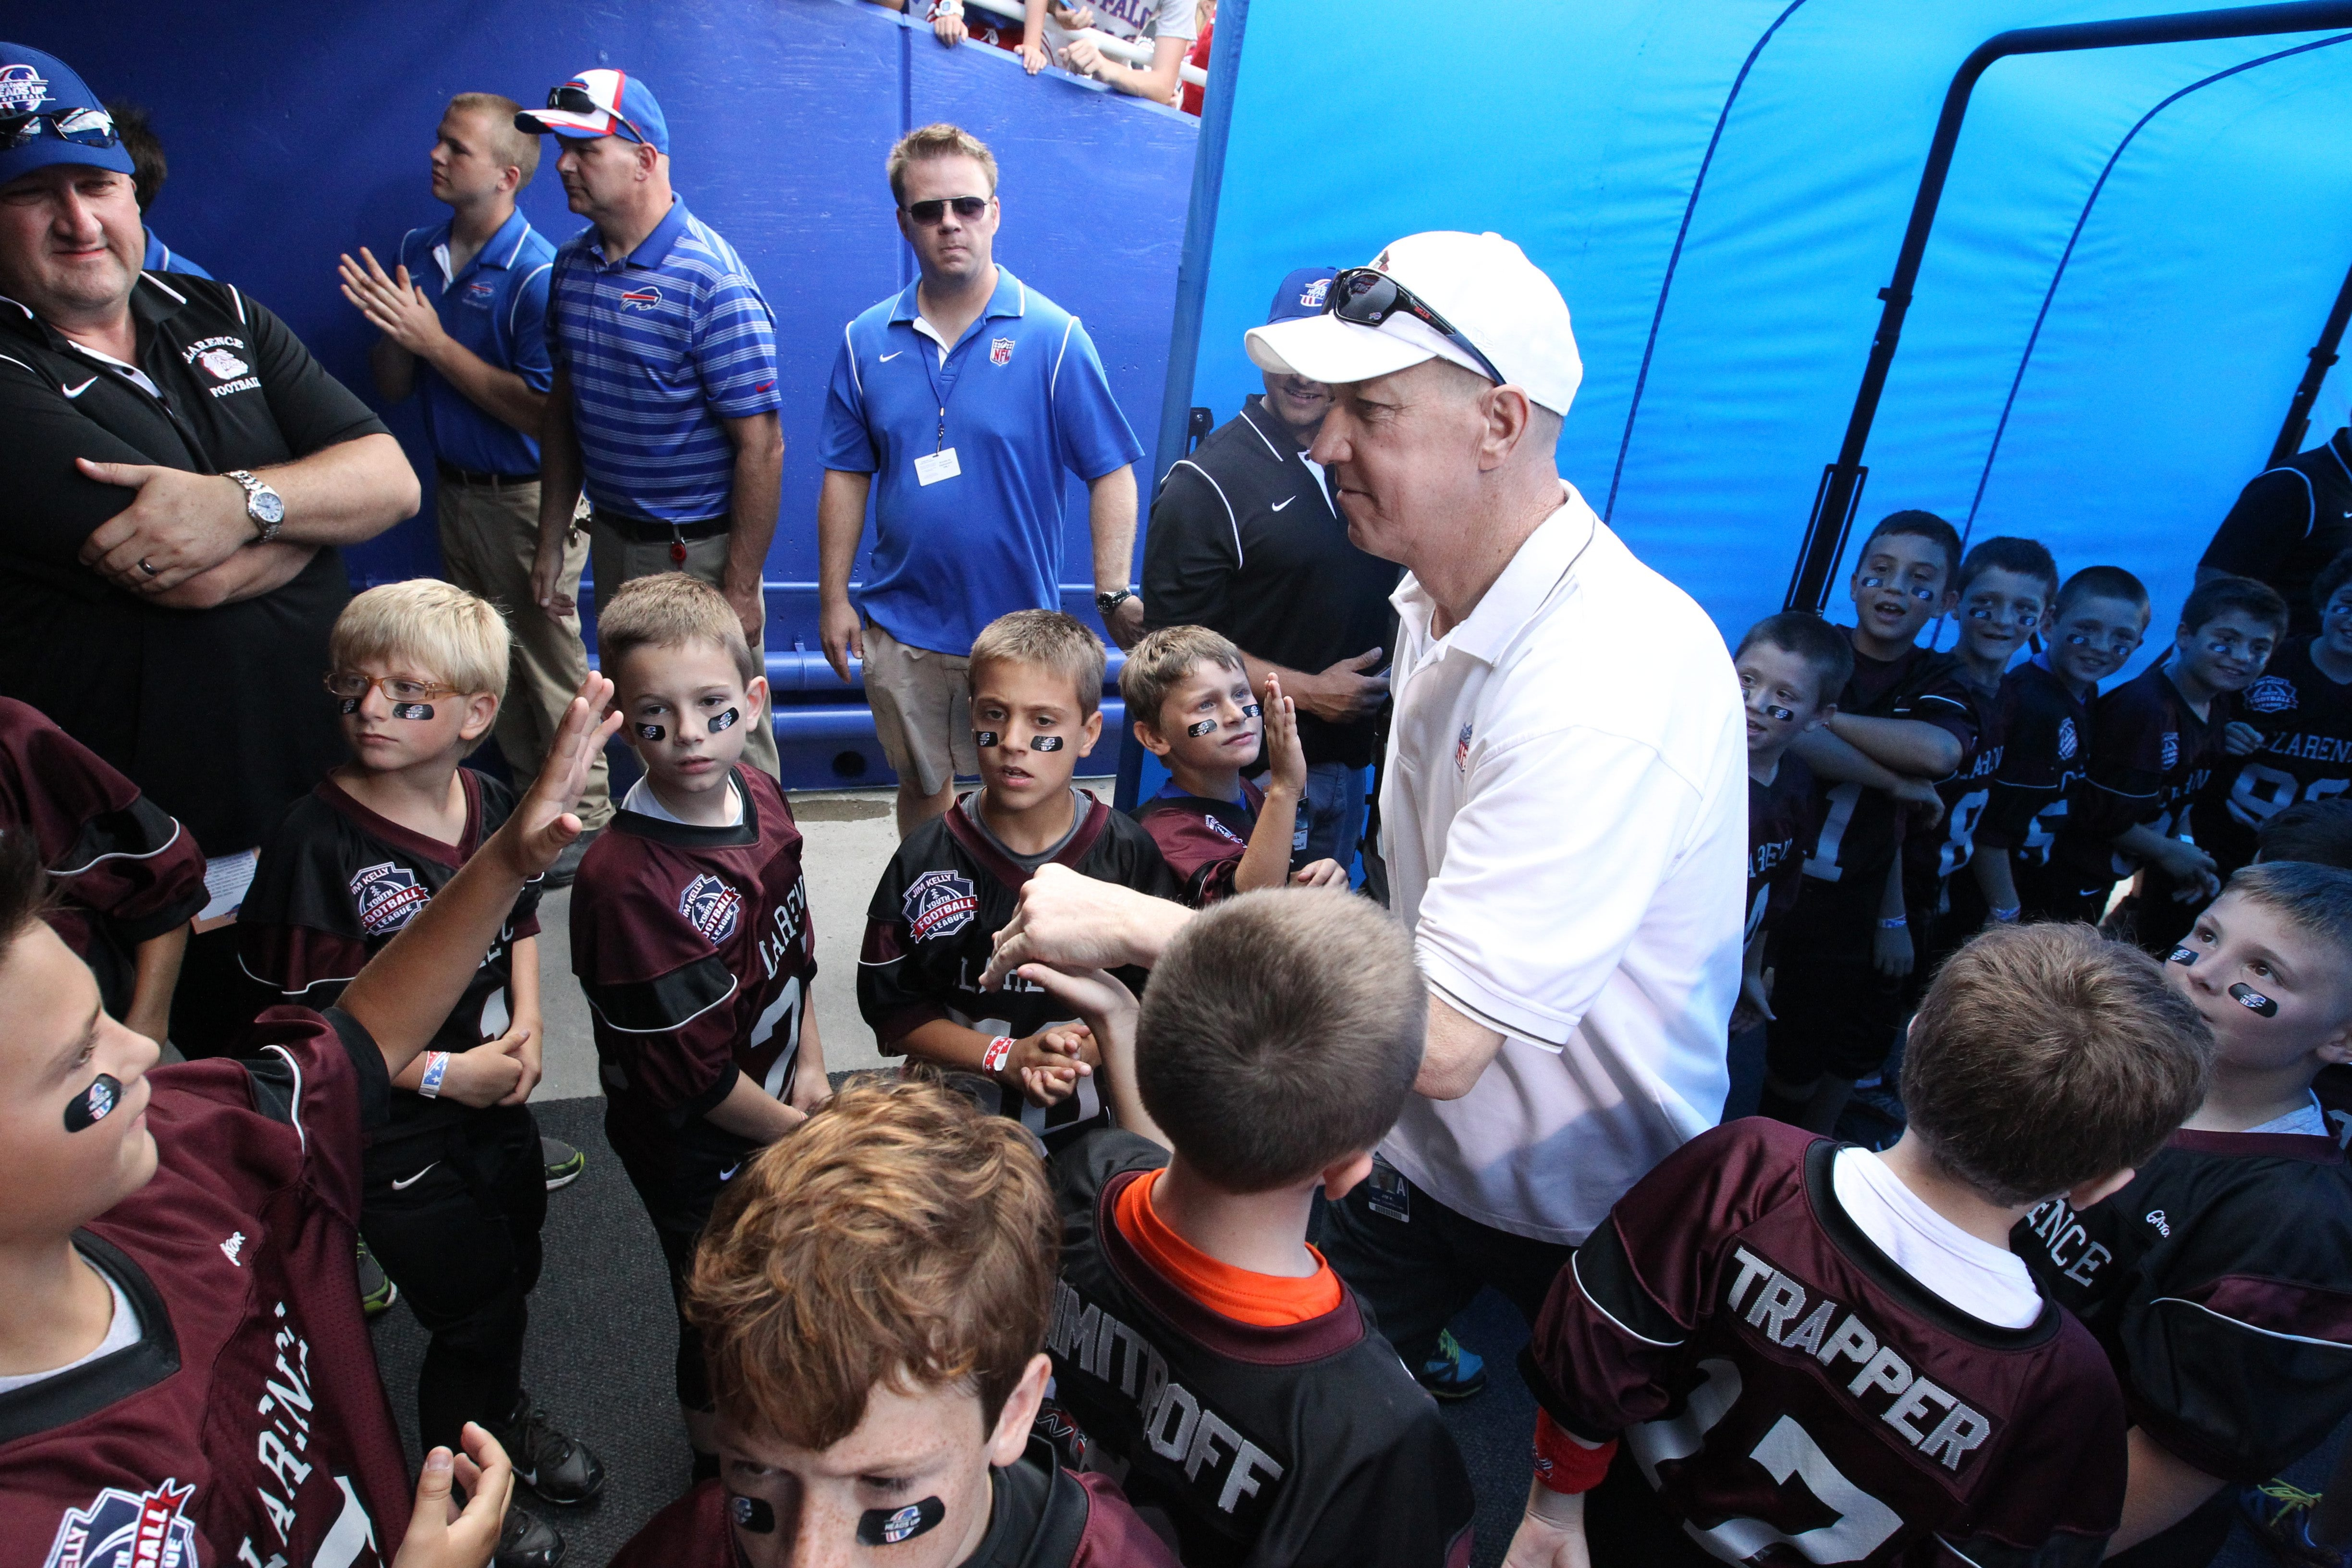 Jim Kelly surprise kids in the tunnel before the Aug. 23 game at Ralph Wilson Stadium in Orchard Park. The Kelly family on Thursday announced that Kelly's cancer is gone.